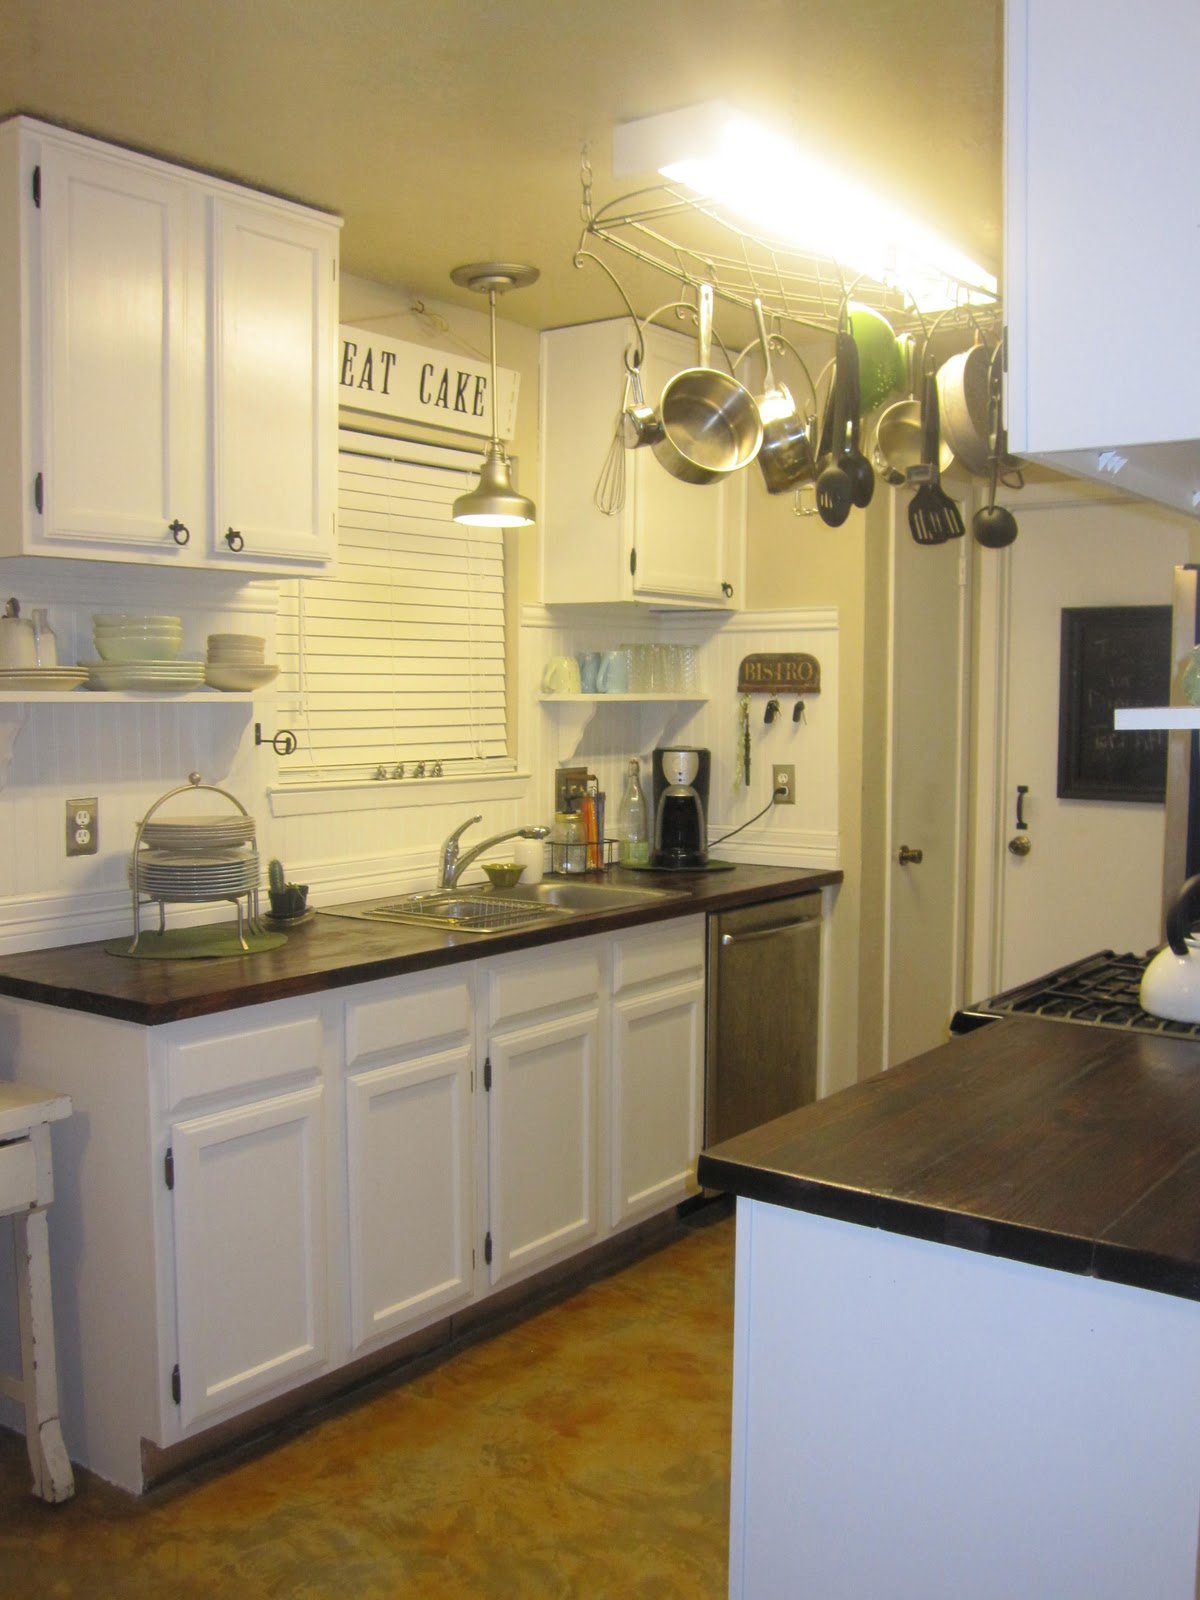 Final Results - How to Make Faux Butcher Block Countertops, DIY Faux Butcher Block Countertops